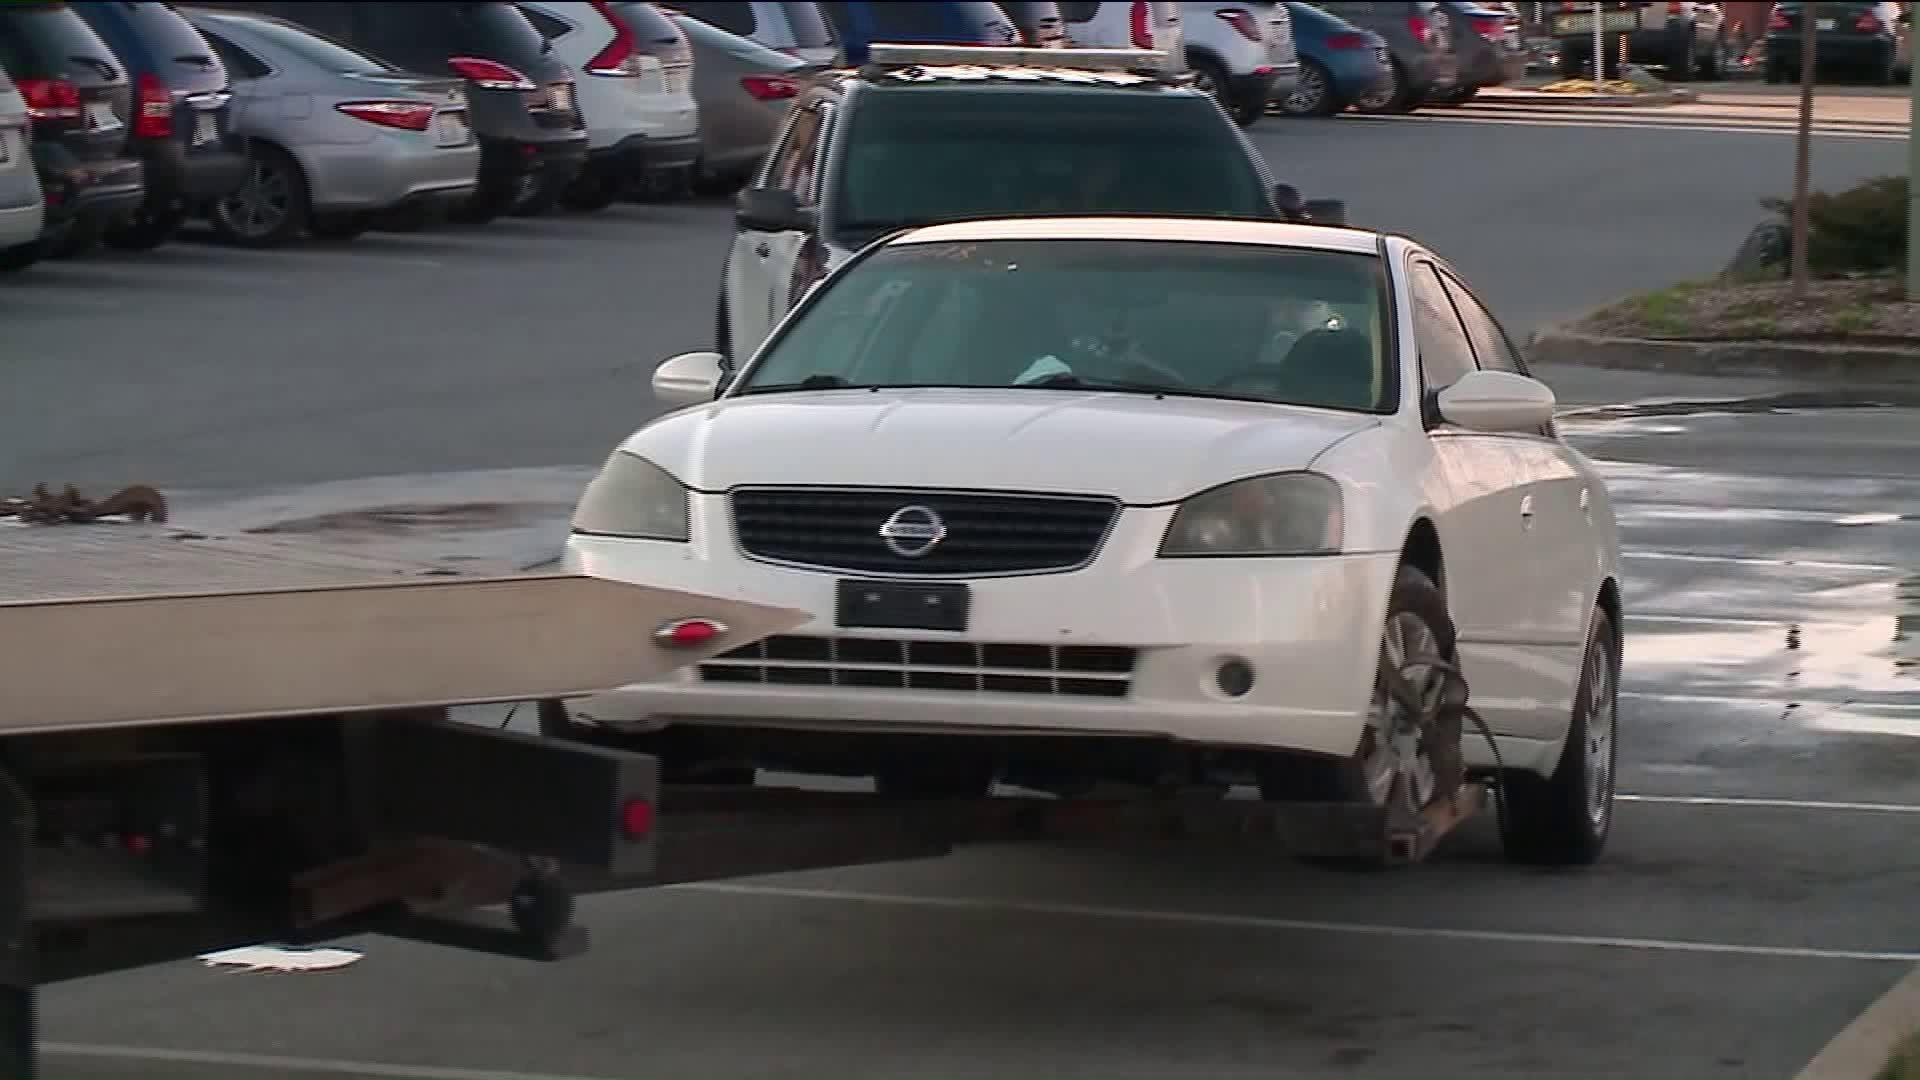 3-year-old accidentally shoots pregnant mom outside a Merrillville ...